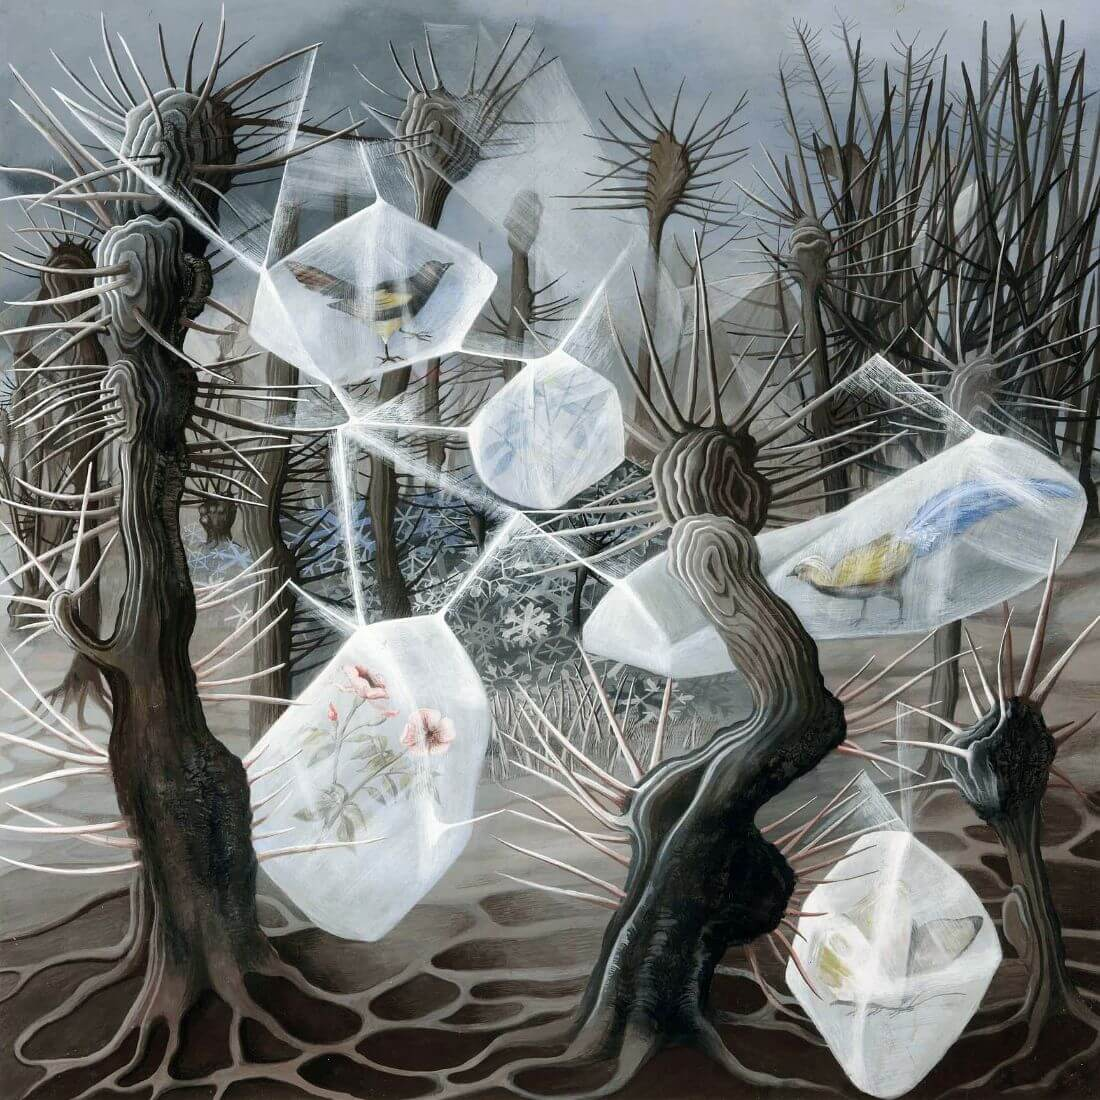 Allegory of Winter, 1948 by Remedios Varo